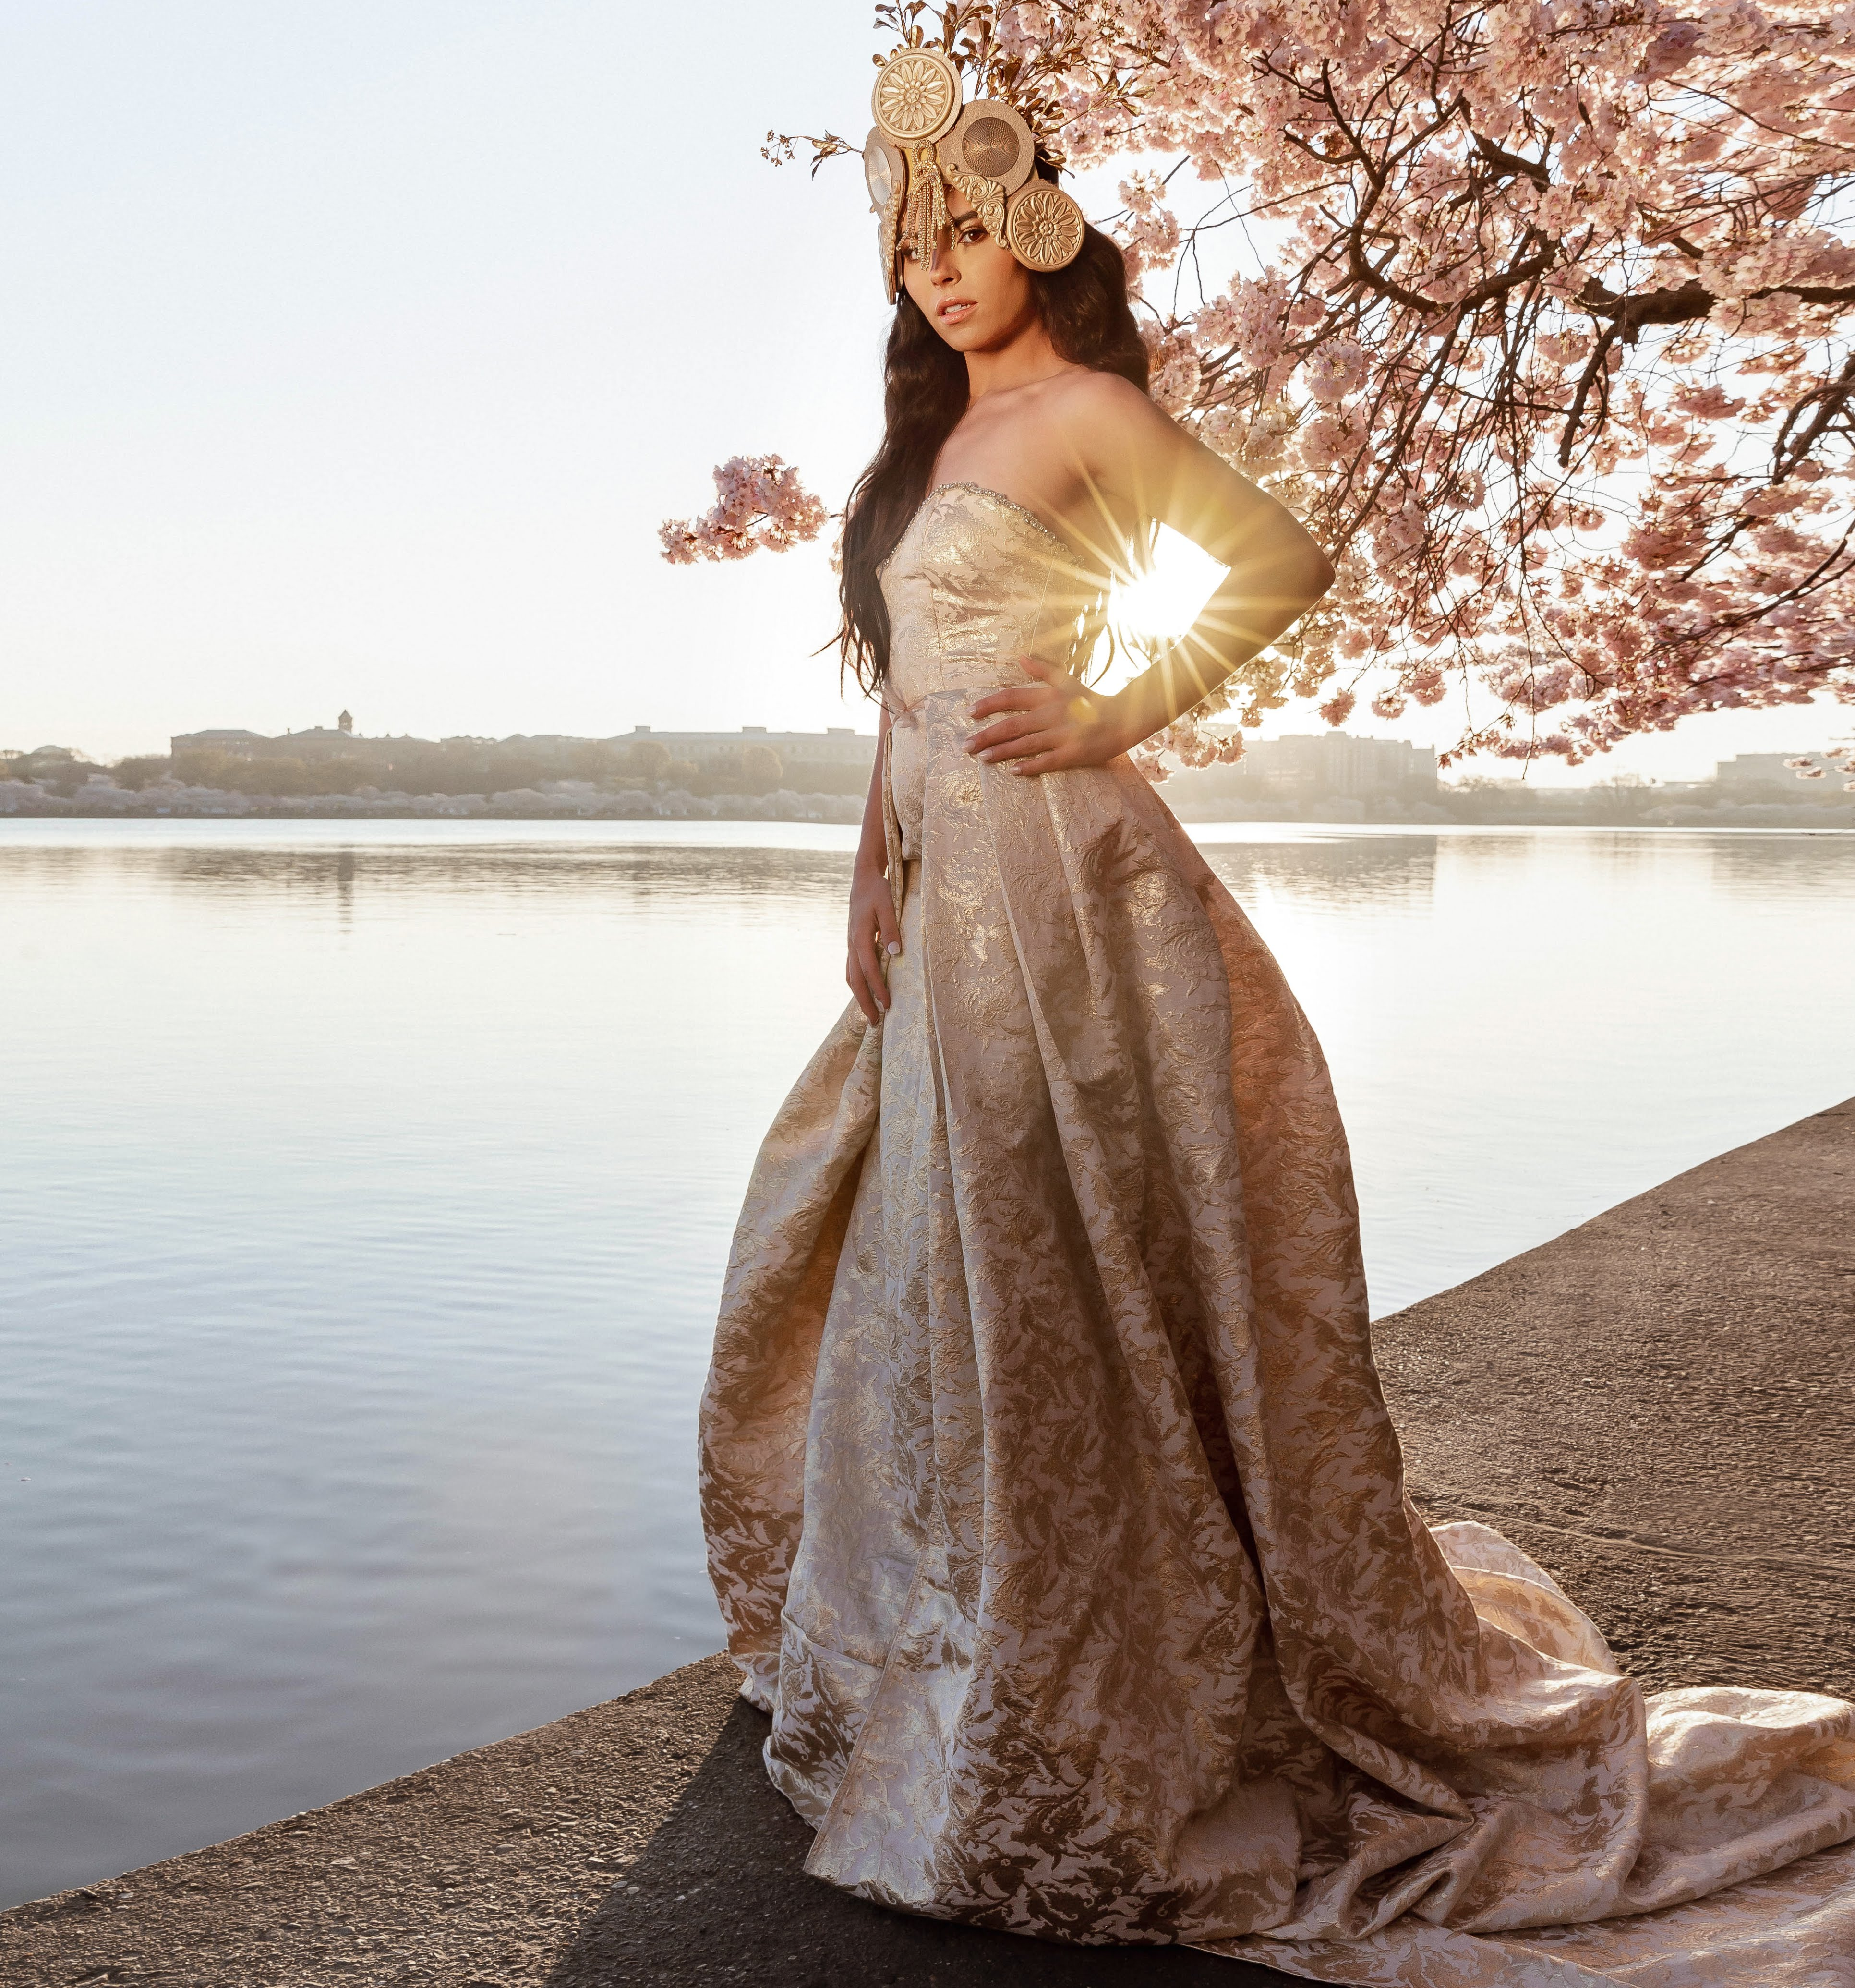 Wedding Gowns Dc: Beauty Of Blossoms: Our Couture Sunrise Cherry Blossom